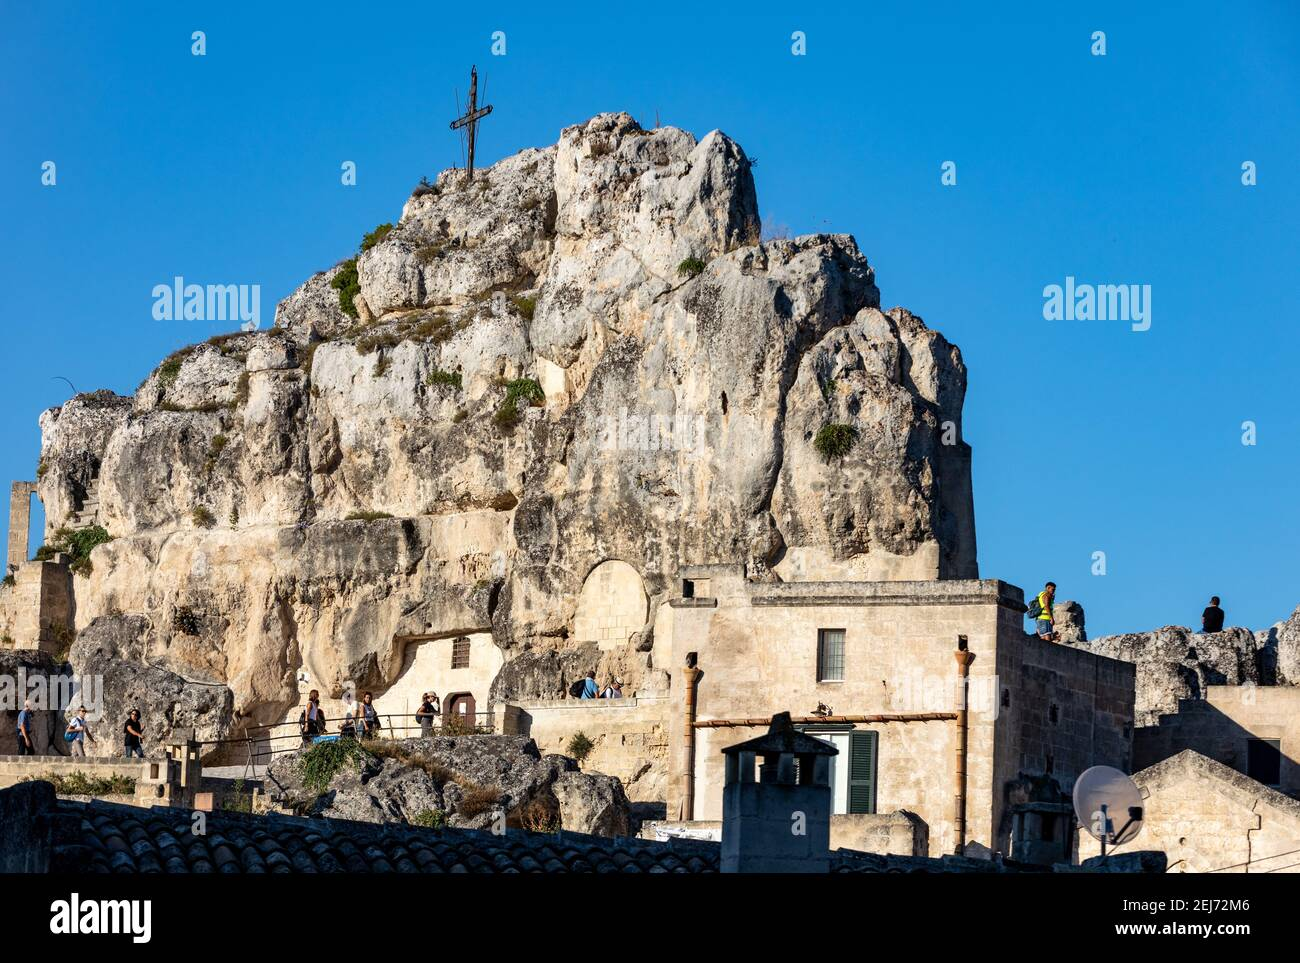 Matera, Italy - September 14, 2019: Church of Saint Mary of Idris in Sassi di Matera a historic district in the city of Matera, well-known for their a Stock Photo